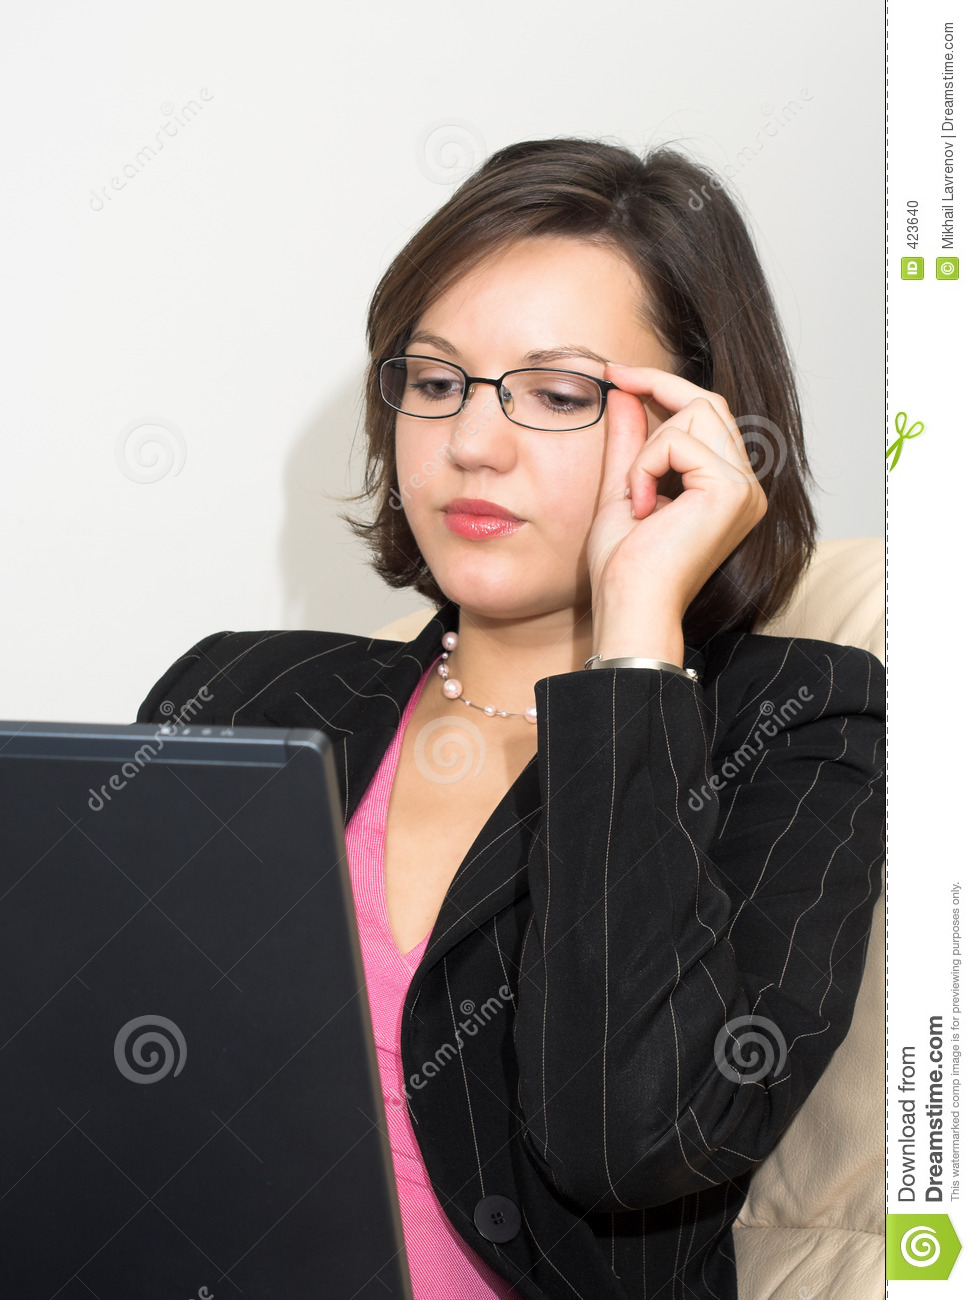 Business lady with a laptop touching her glasses